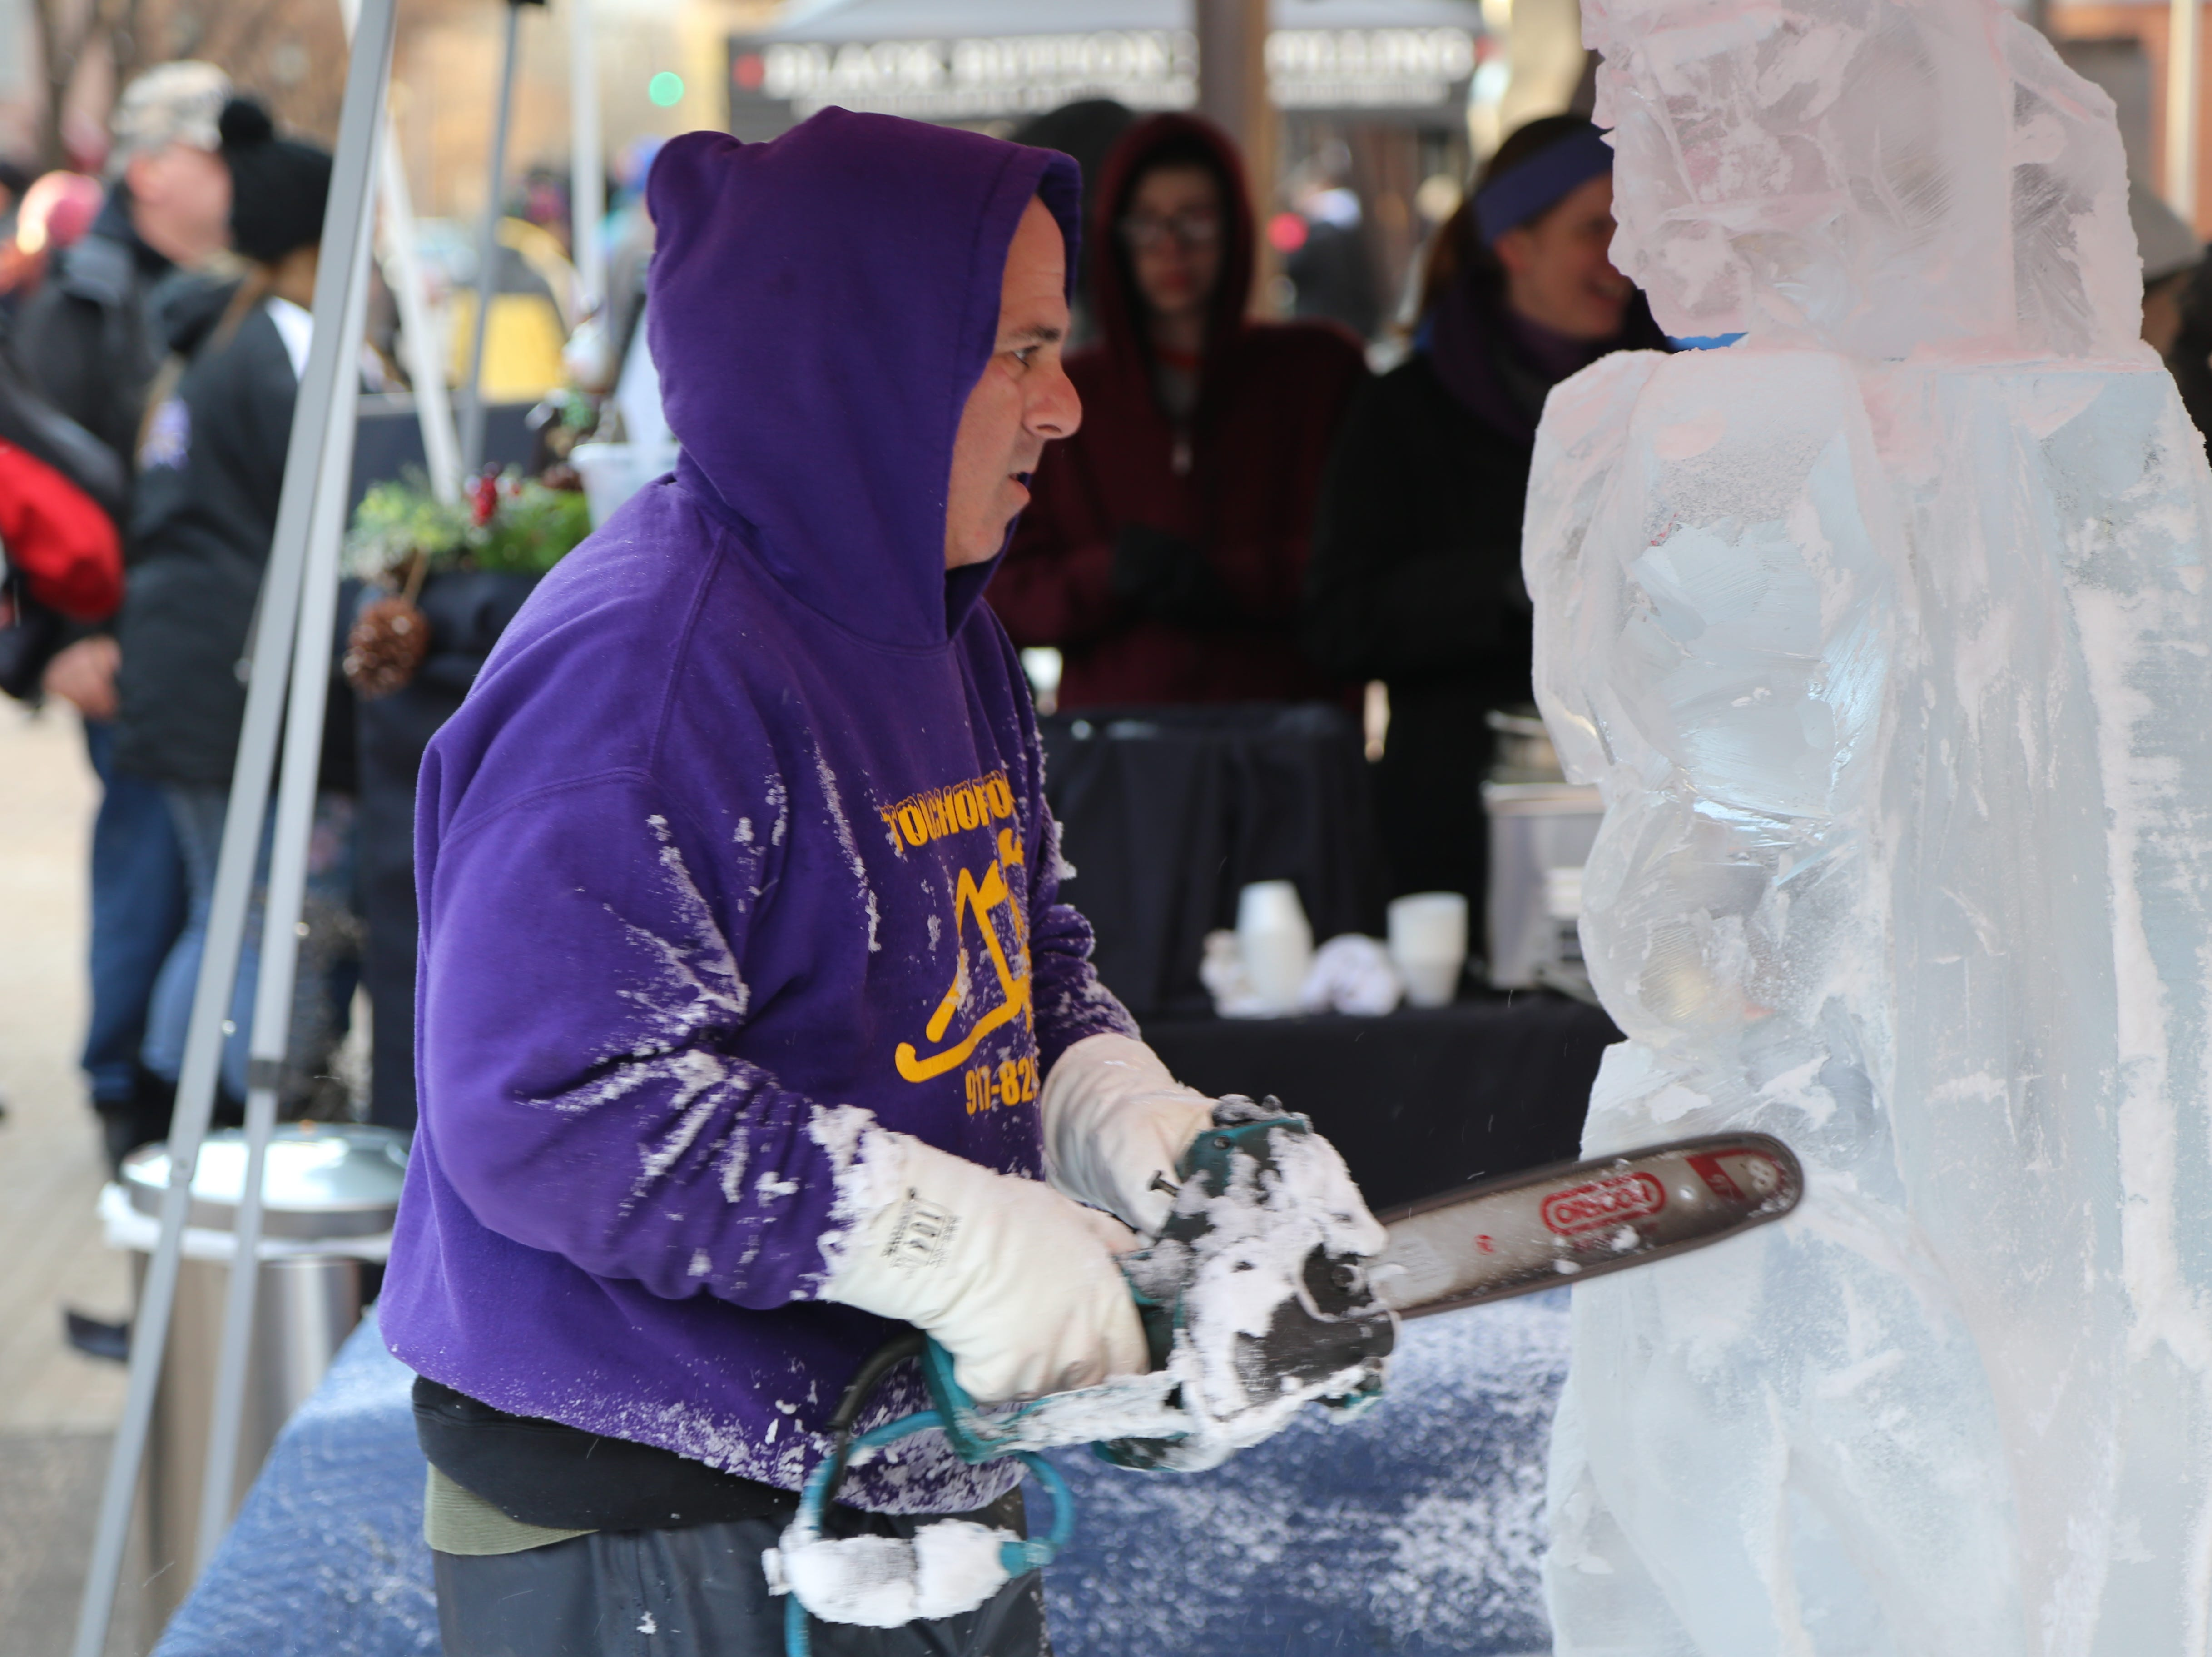 T.J. Neary, of Staten Island, carves a gargoyle during the 12th annual Ithaca Ice Fest.